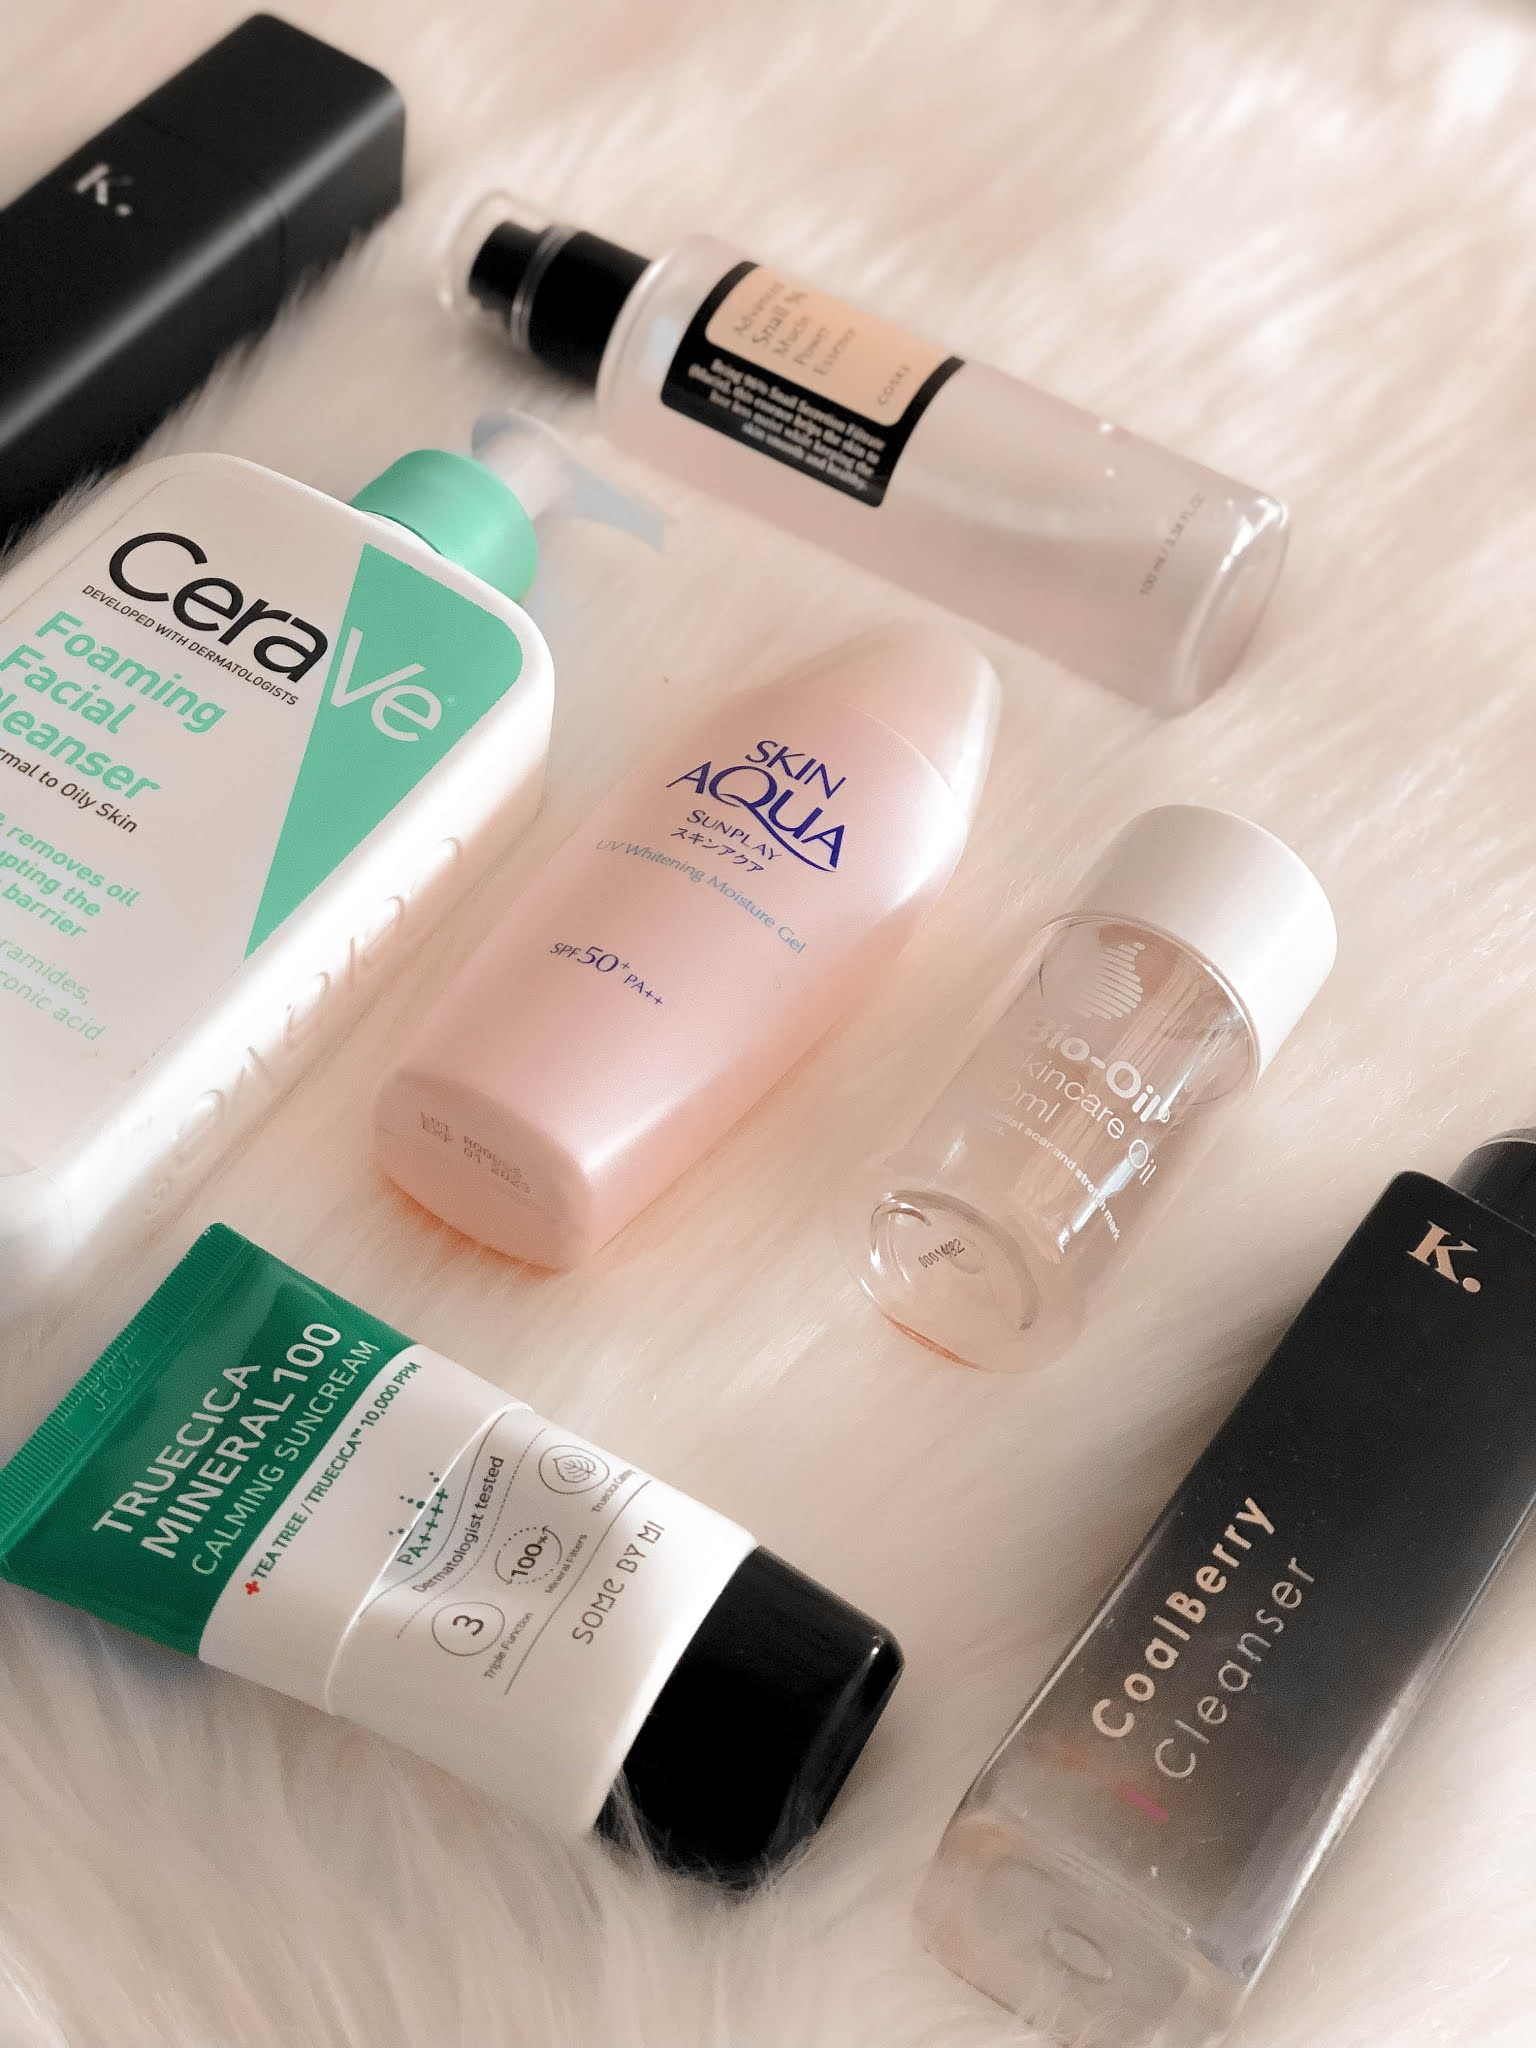 Beauty Product Empties #9